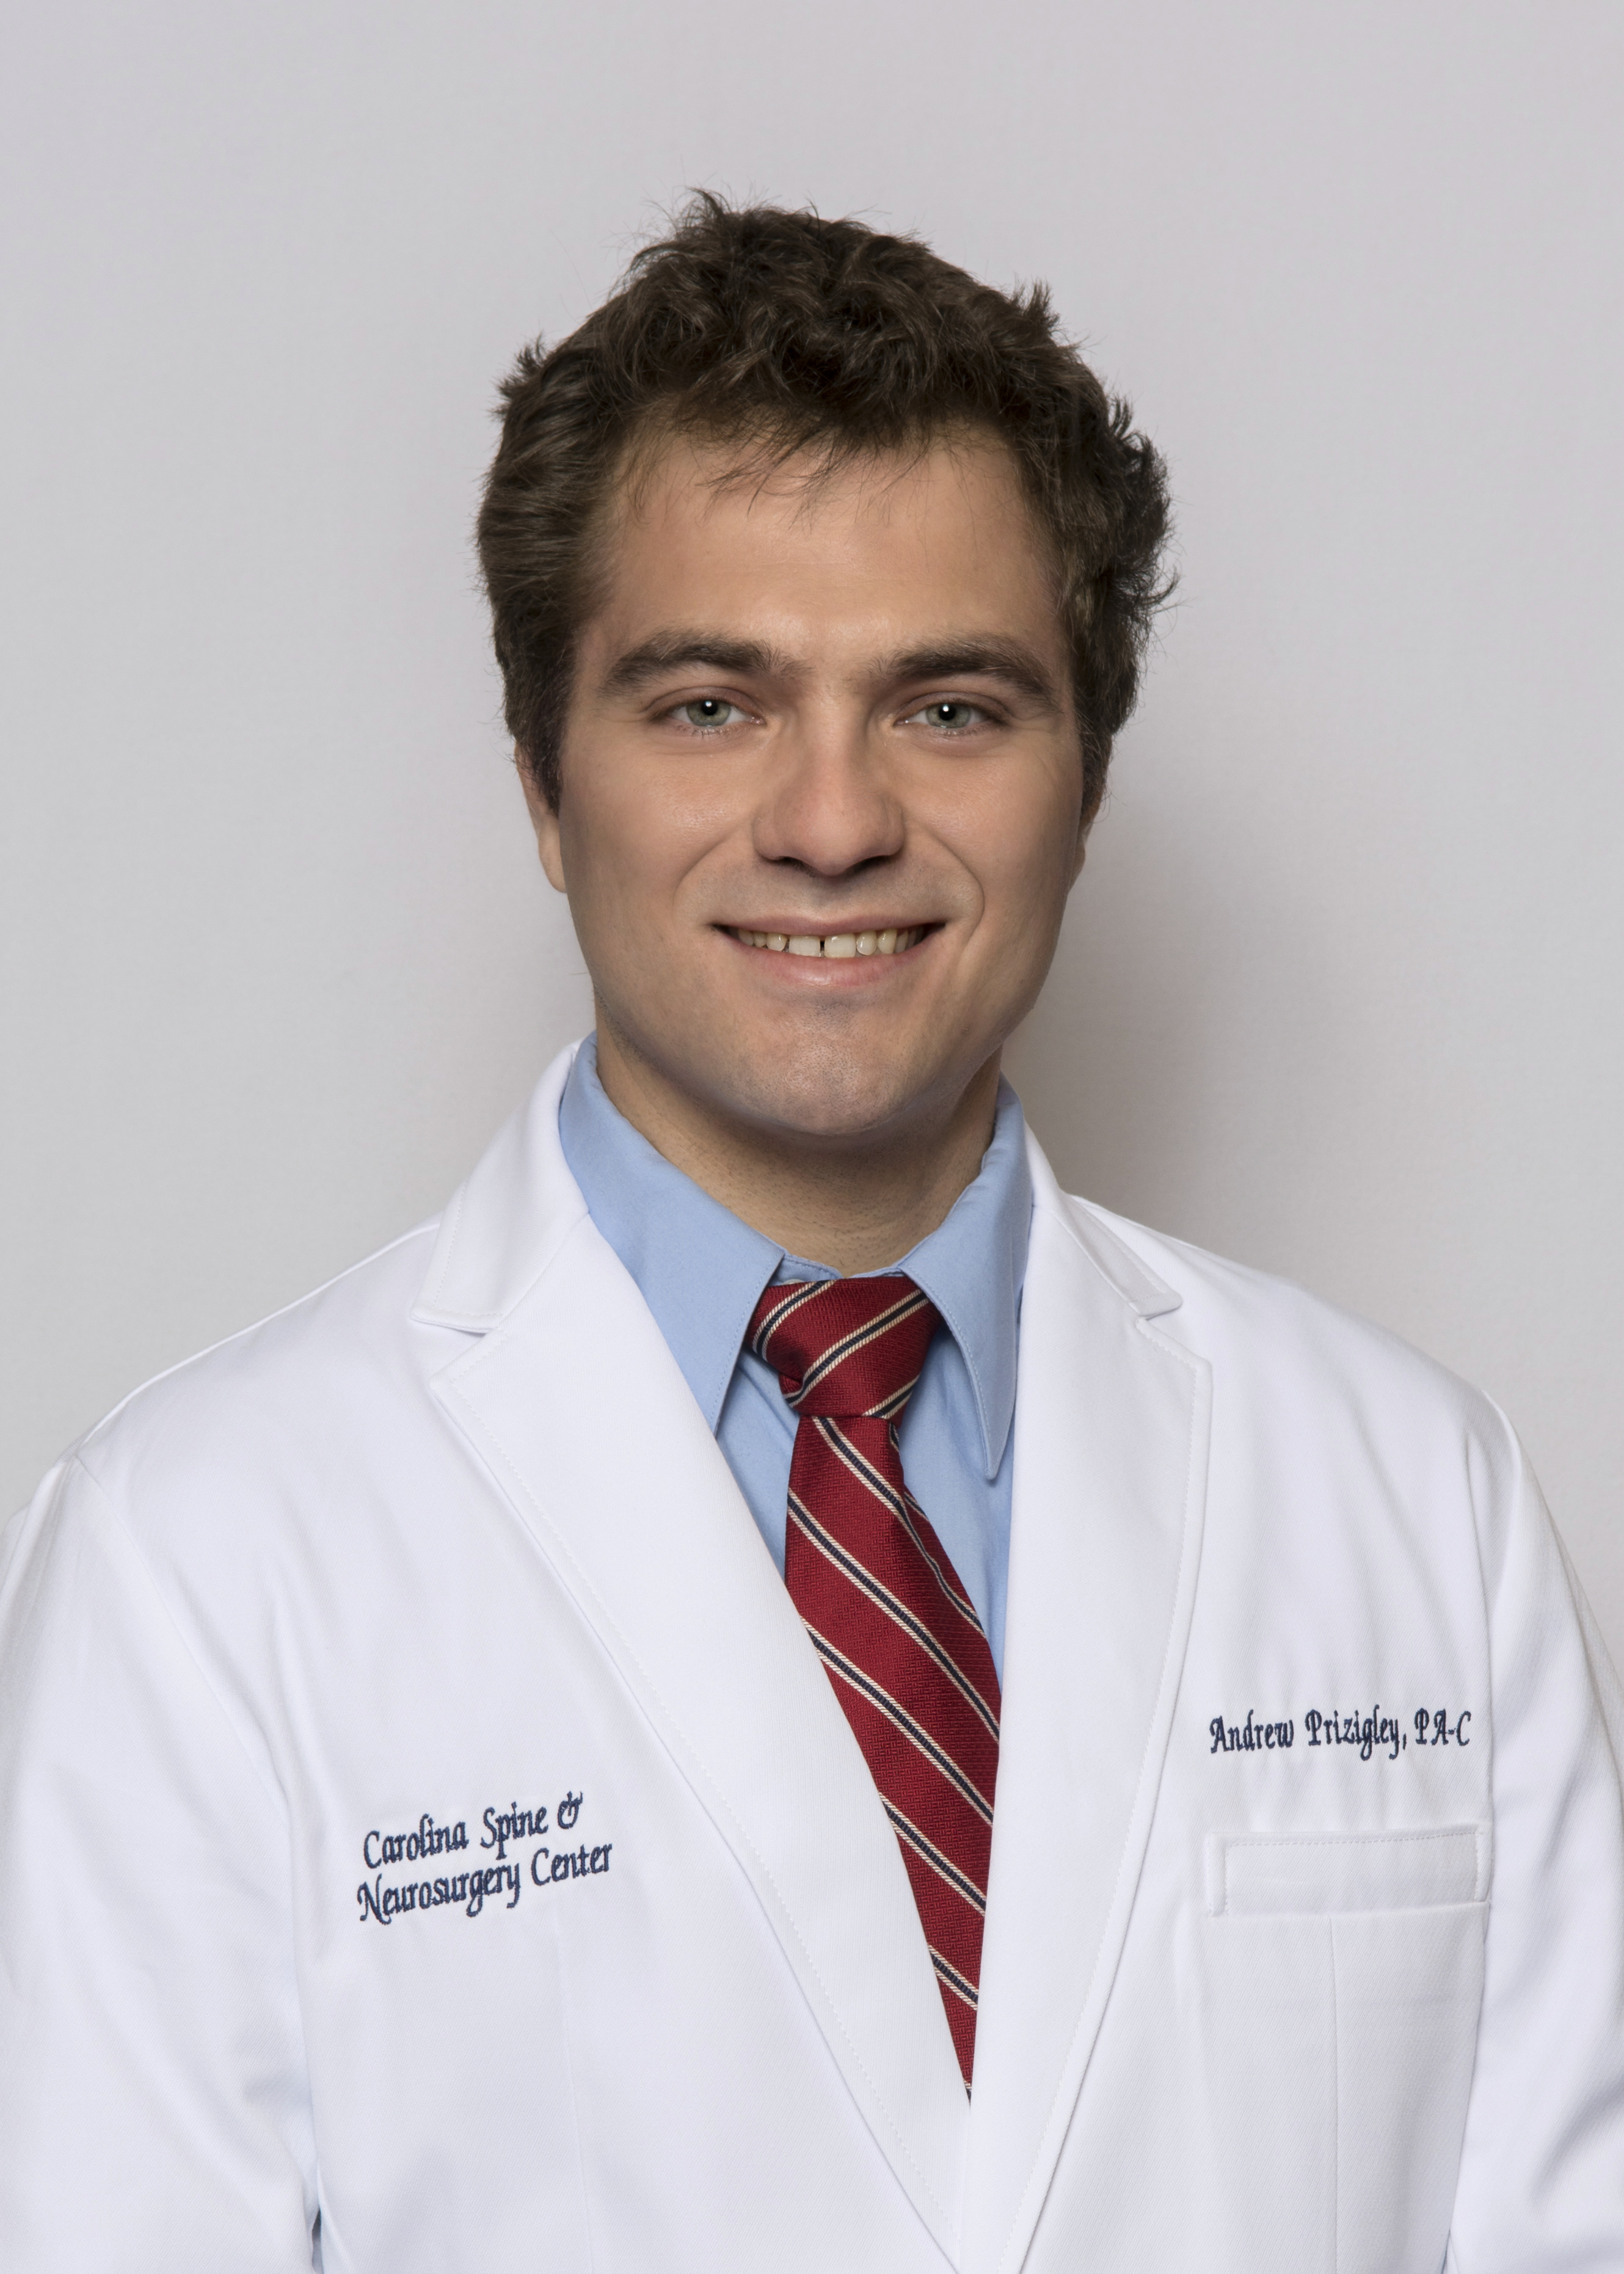 Carolina Spine & Neurosurgery Center: Meet the Staff